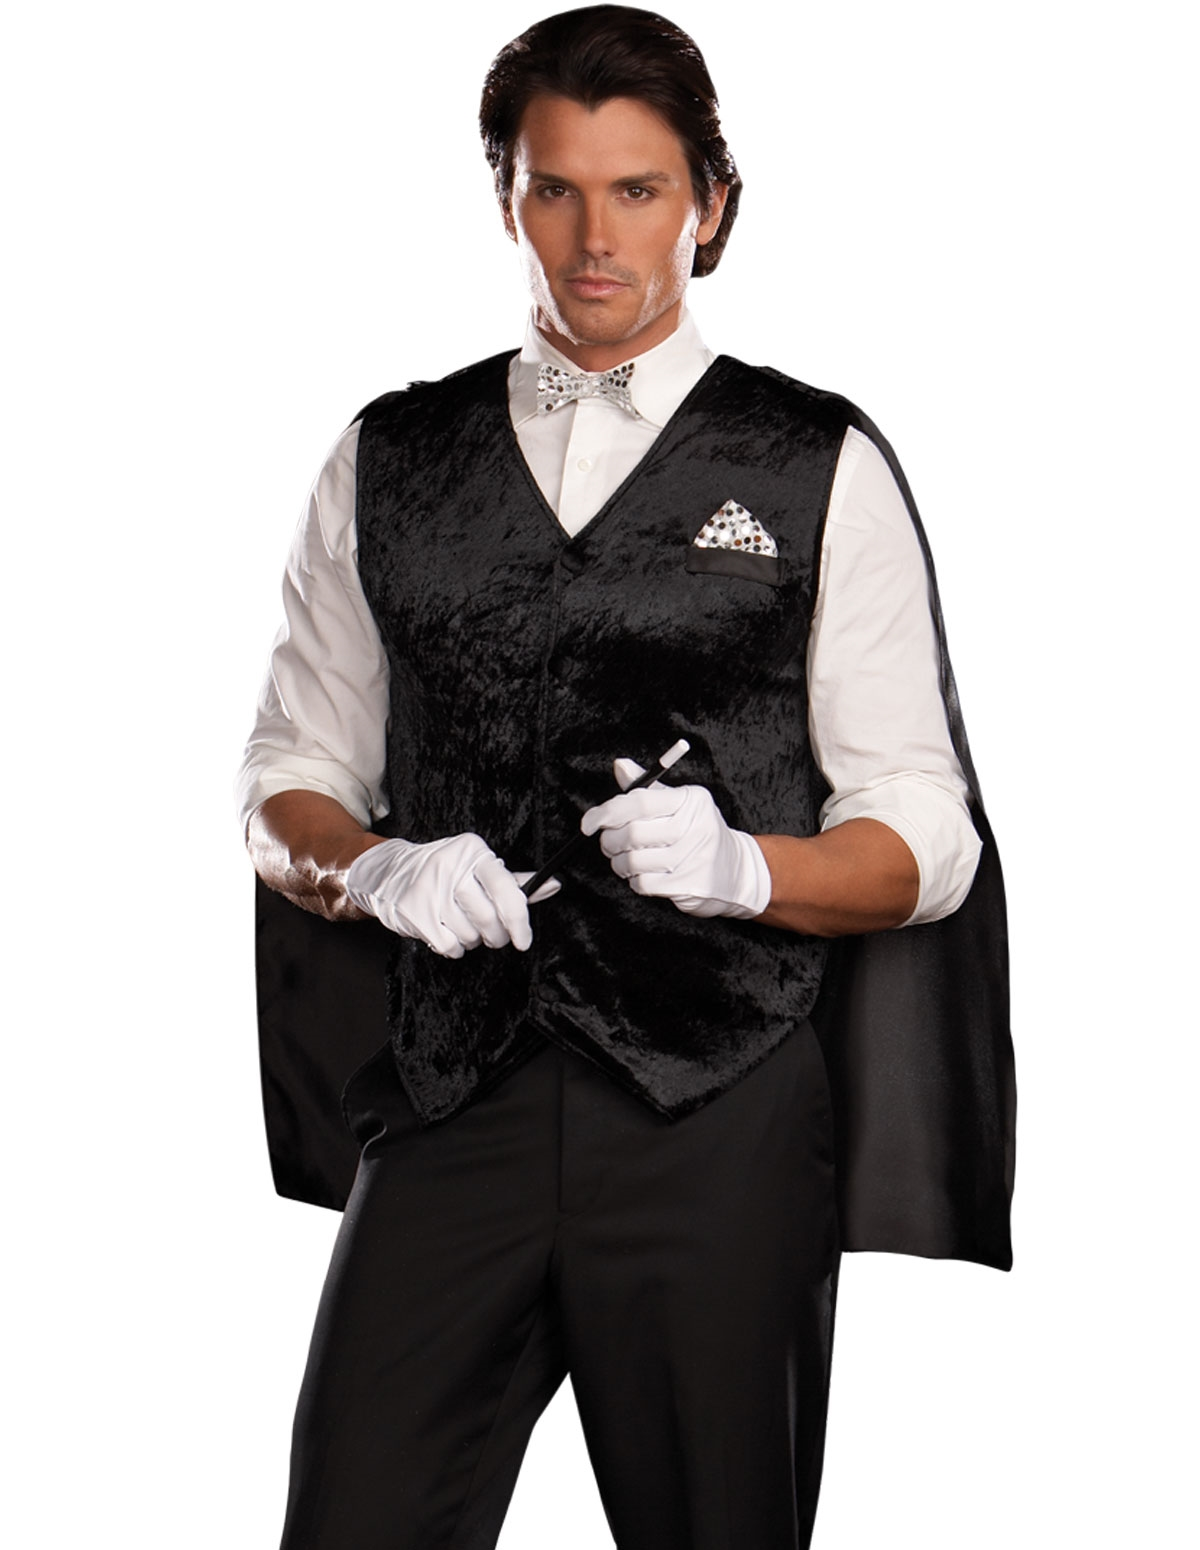 Black Magic Man Costume